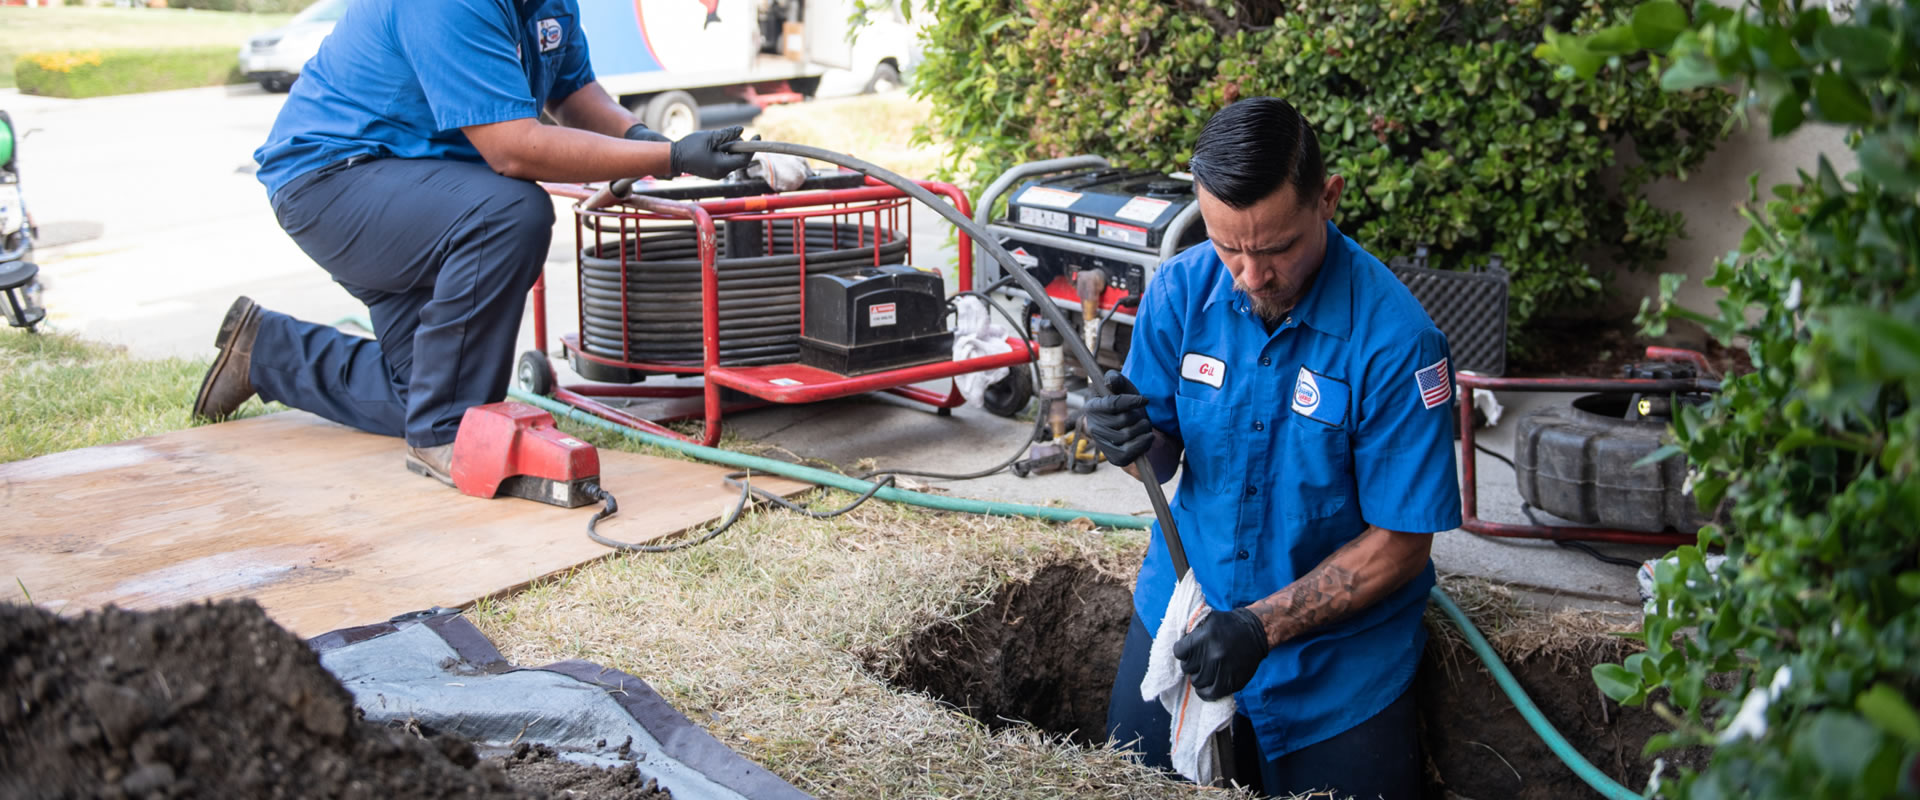 Drain Cleaning in Litchfield Park